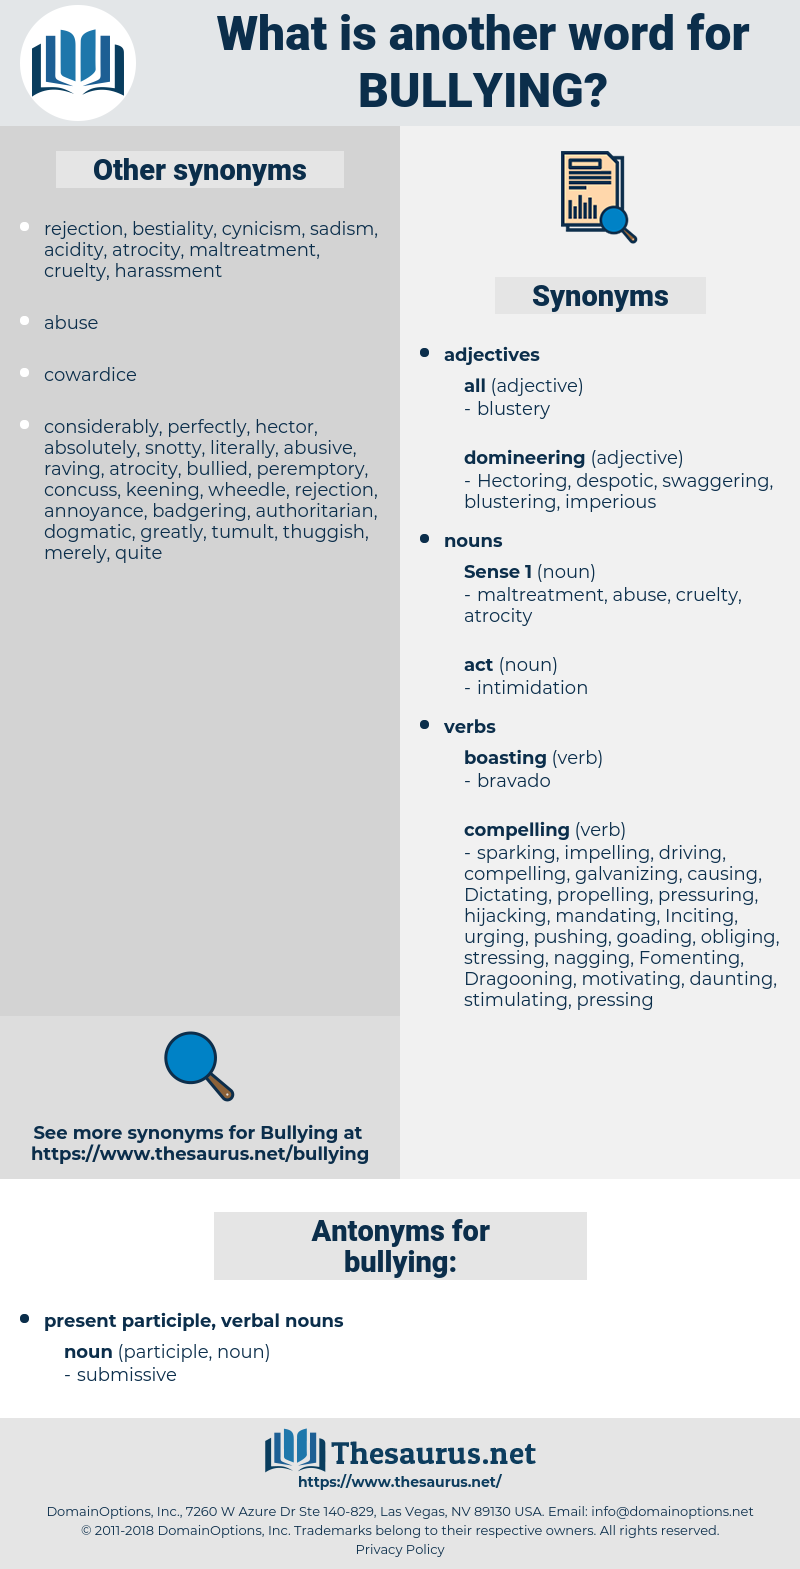 bullying, synonym bullying, another word for bullying, words like bullying, thesaurus bullying